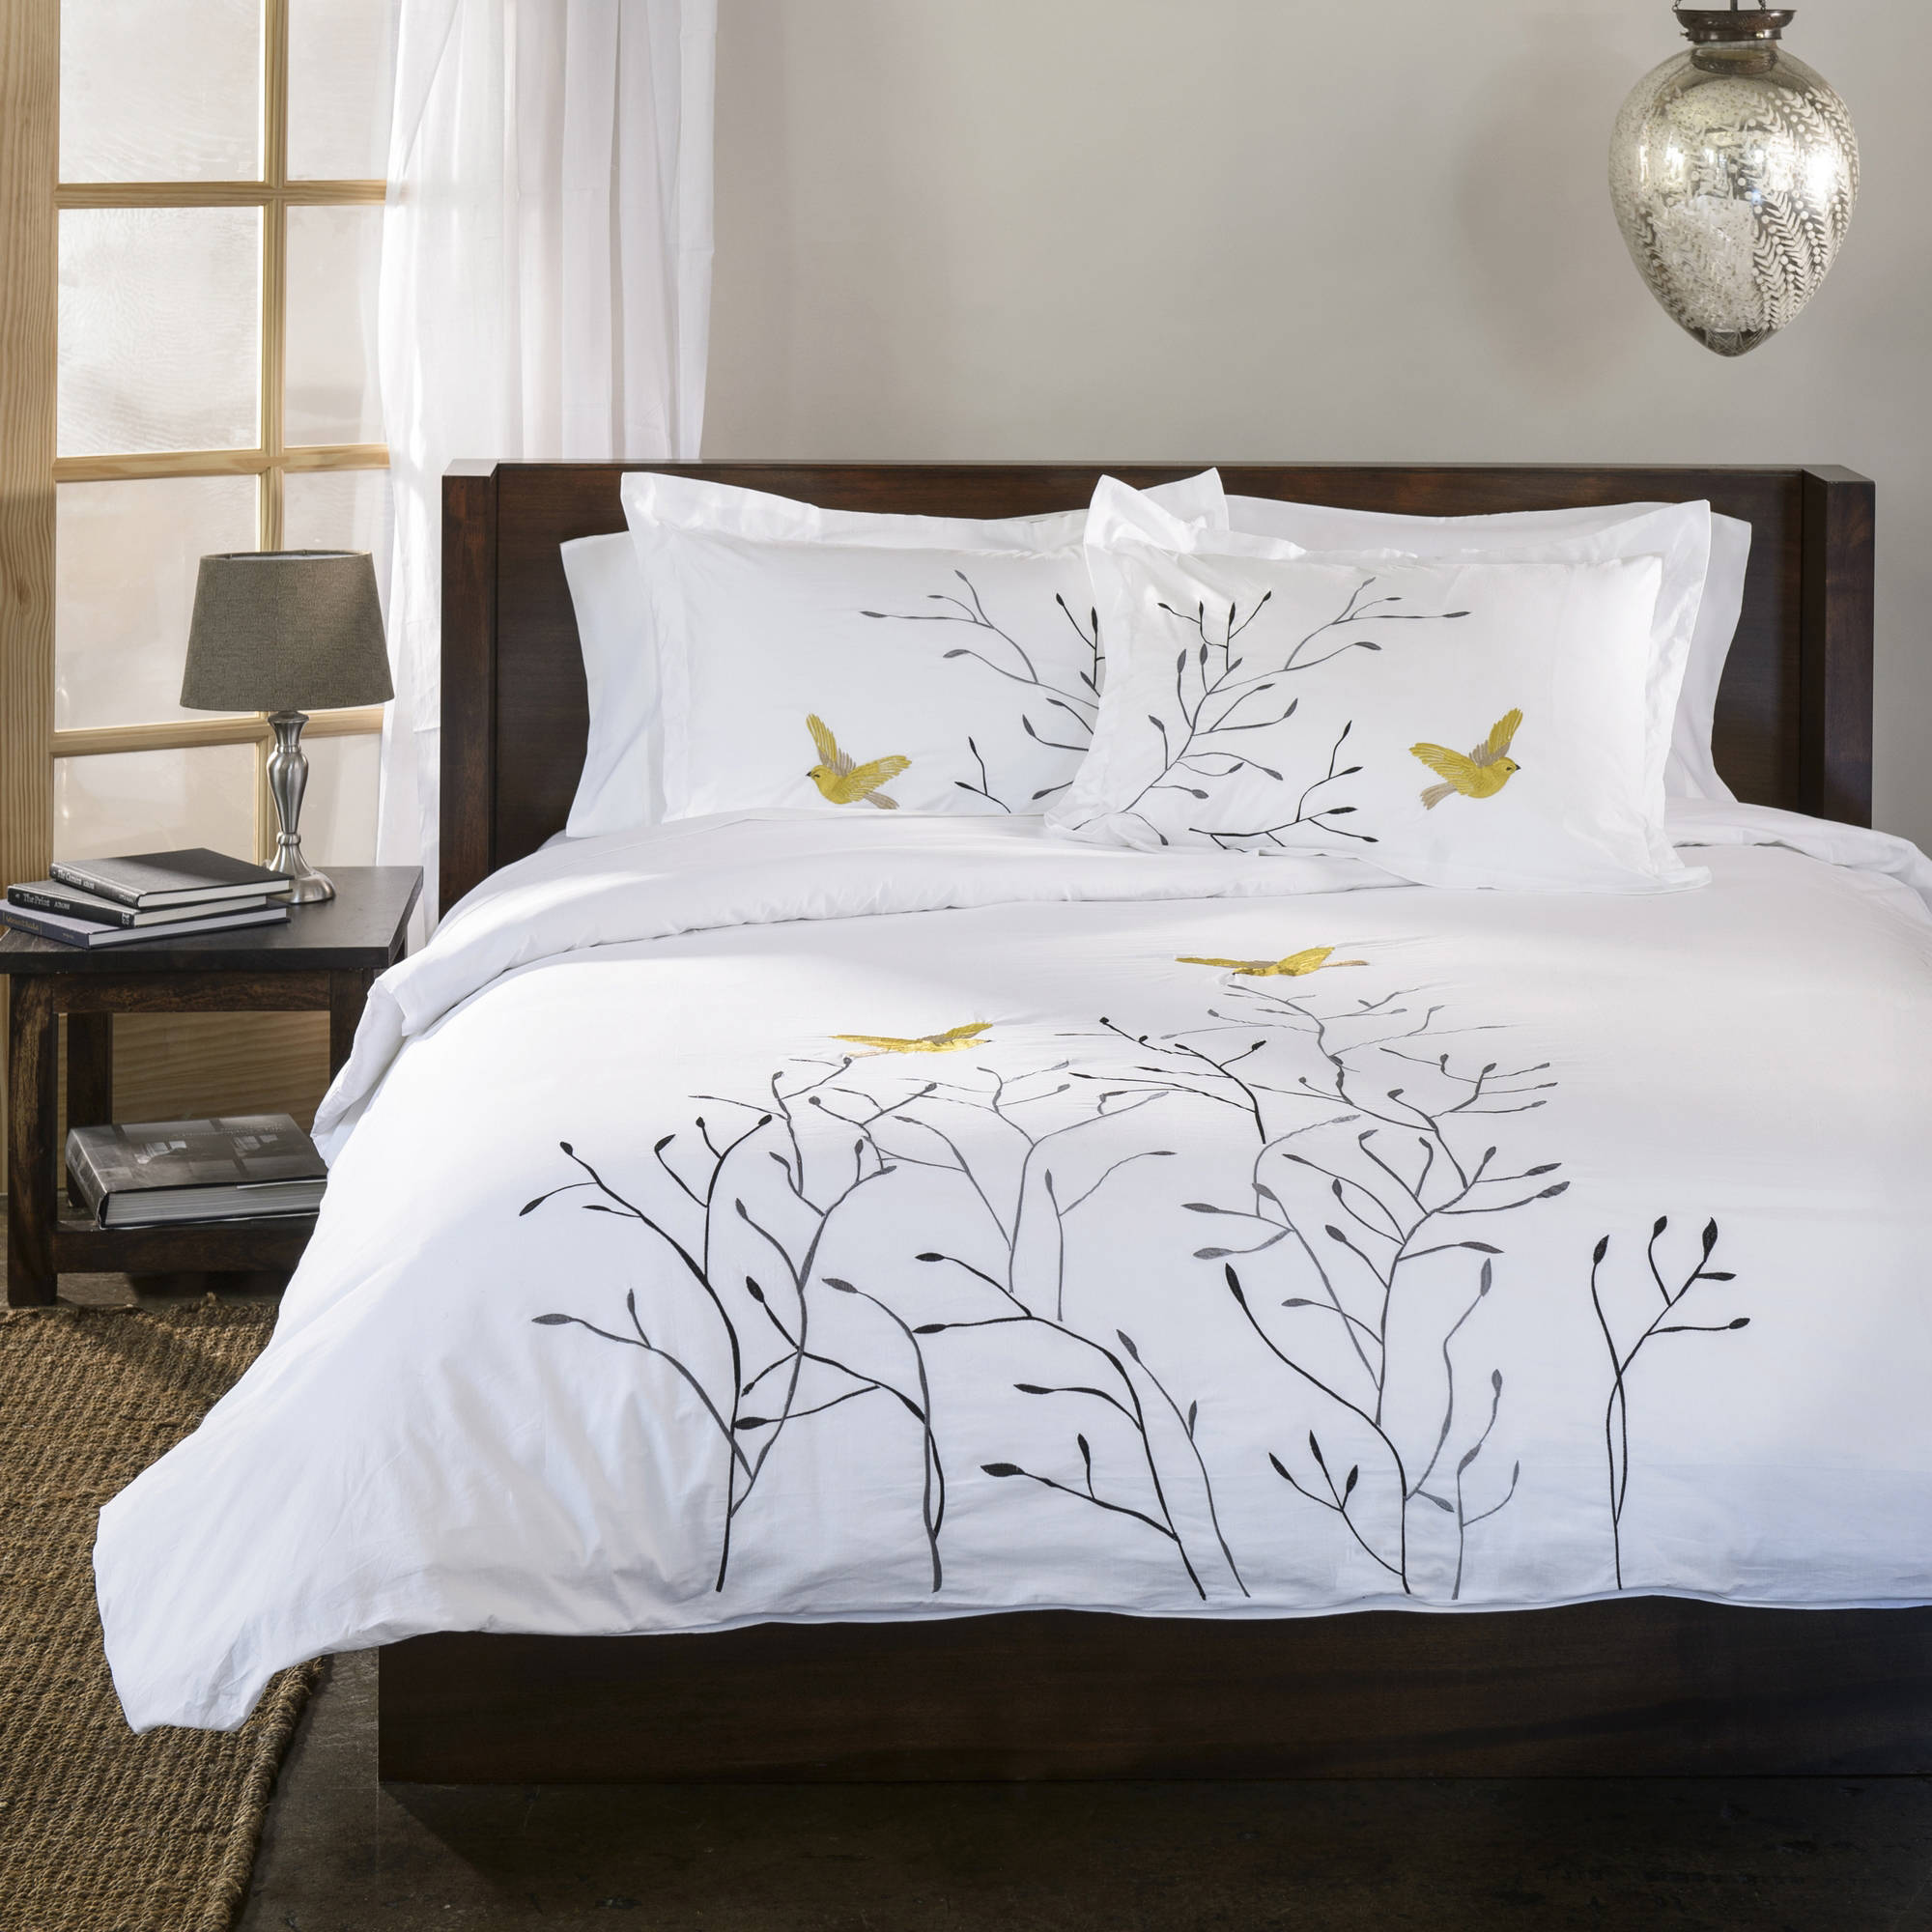 Superior Swallow Premium Cotton Percale Embroidered 3-Piece Duvet Cover Set